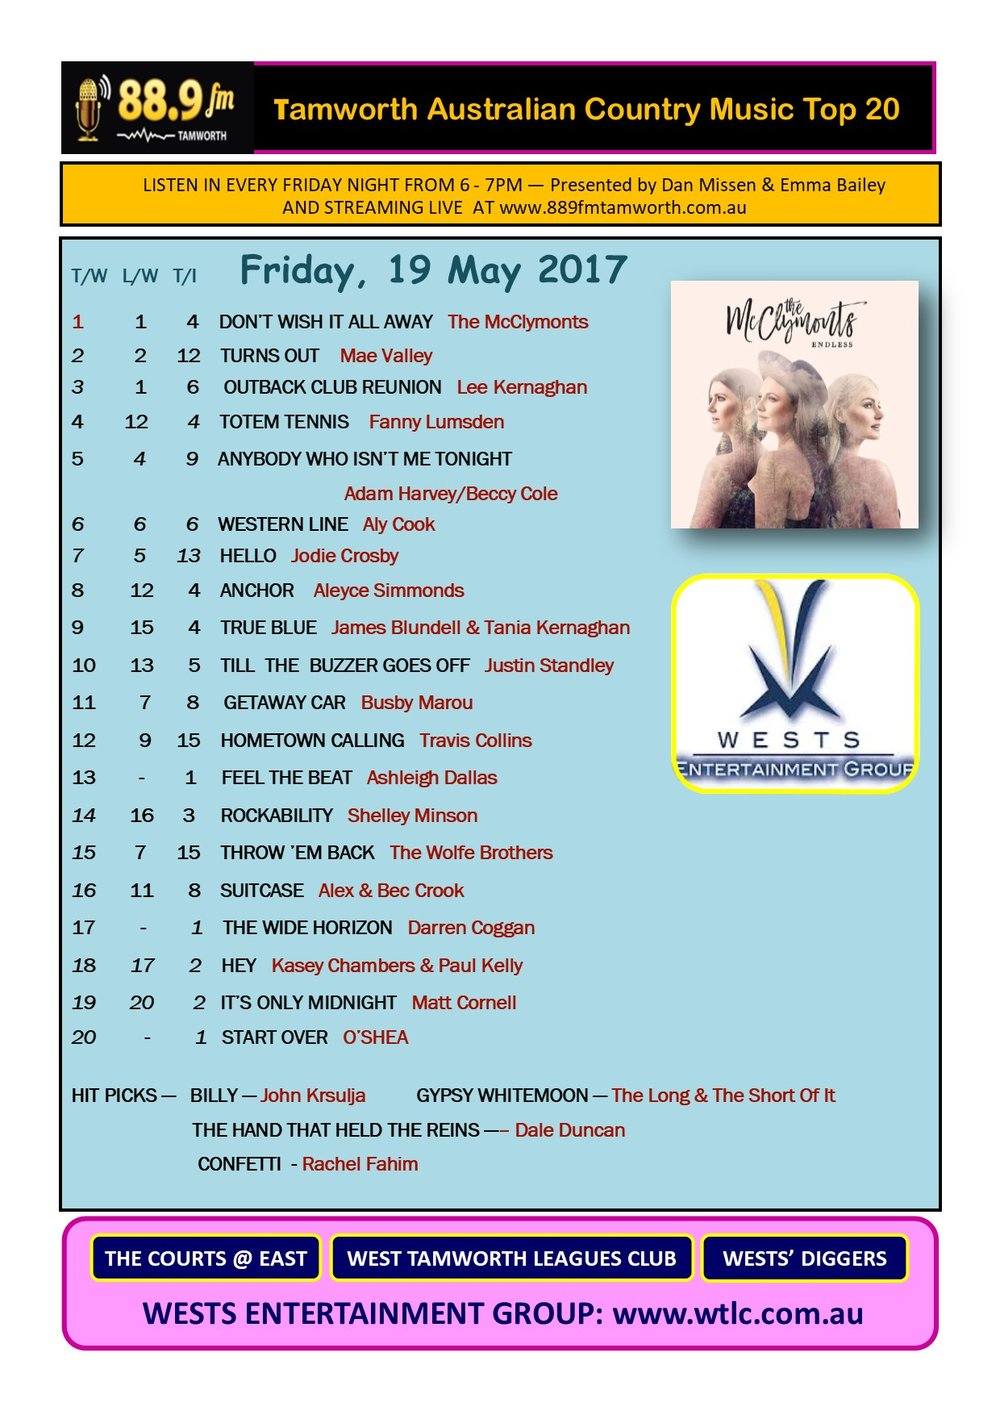 88.9fm Tamworth May 19 Top 20 Chart